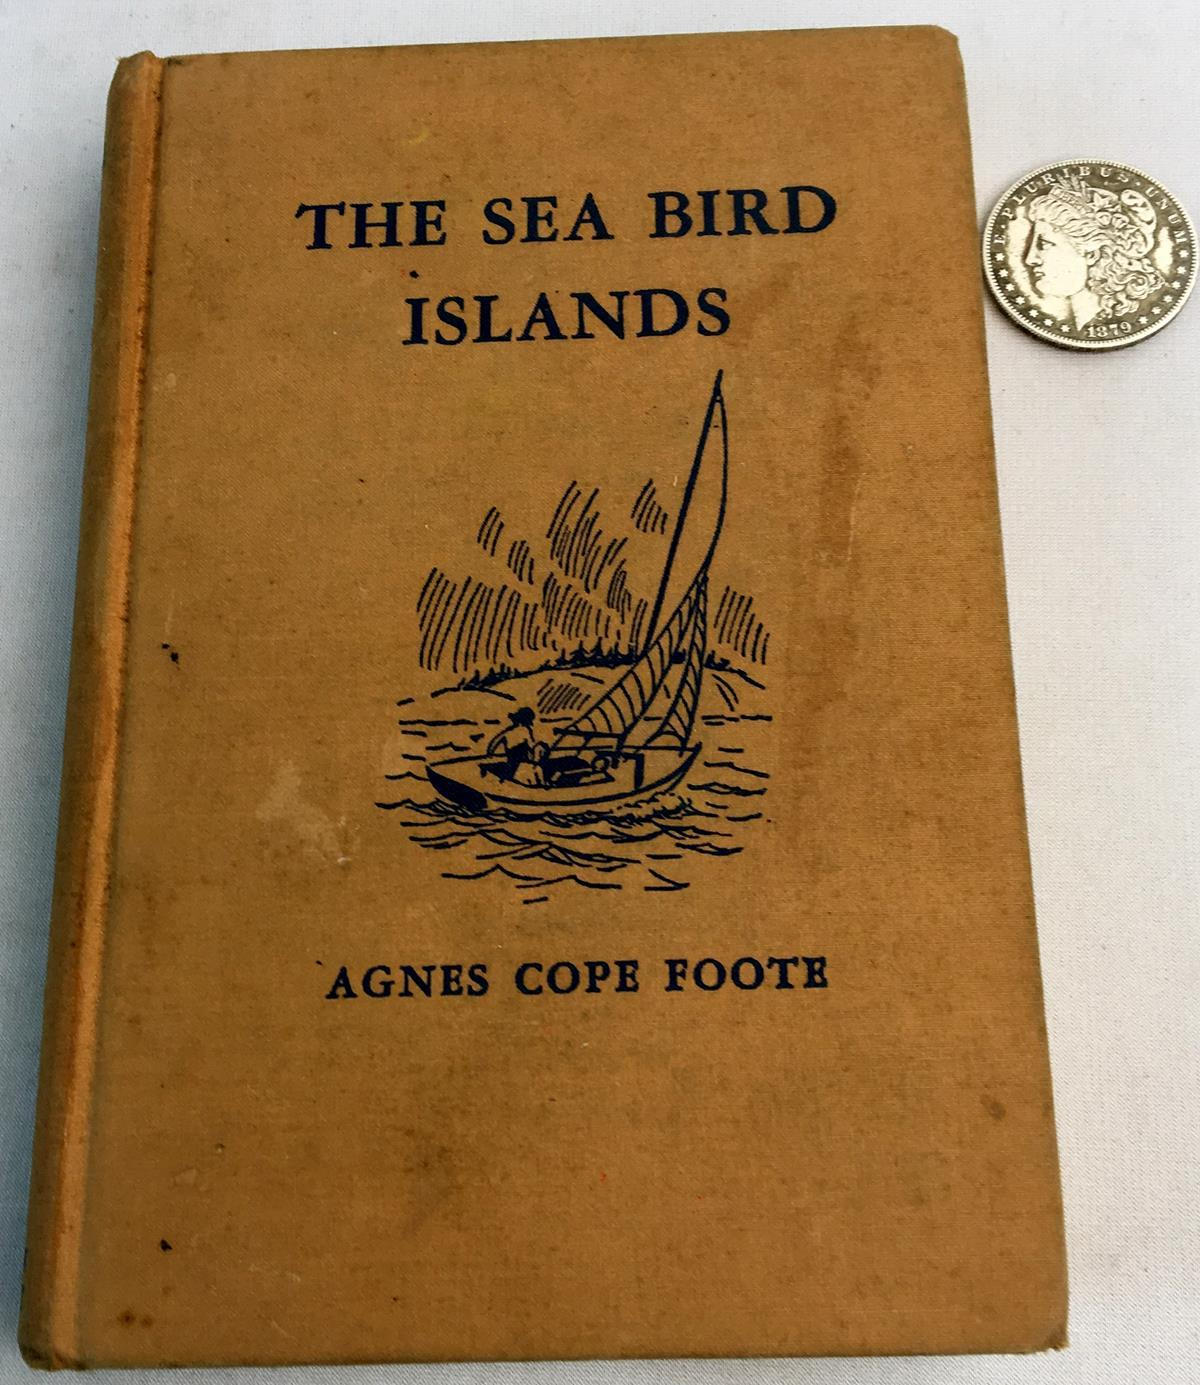 1939 The Sea Bird Islands by Agnes Cope Foote Illustrated by Andrew Wyeth FIRST EDITION